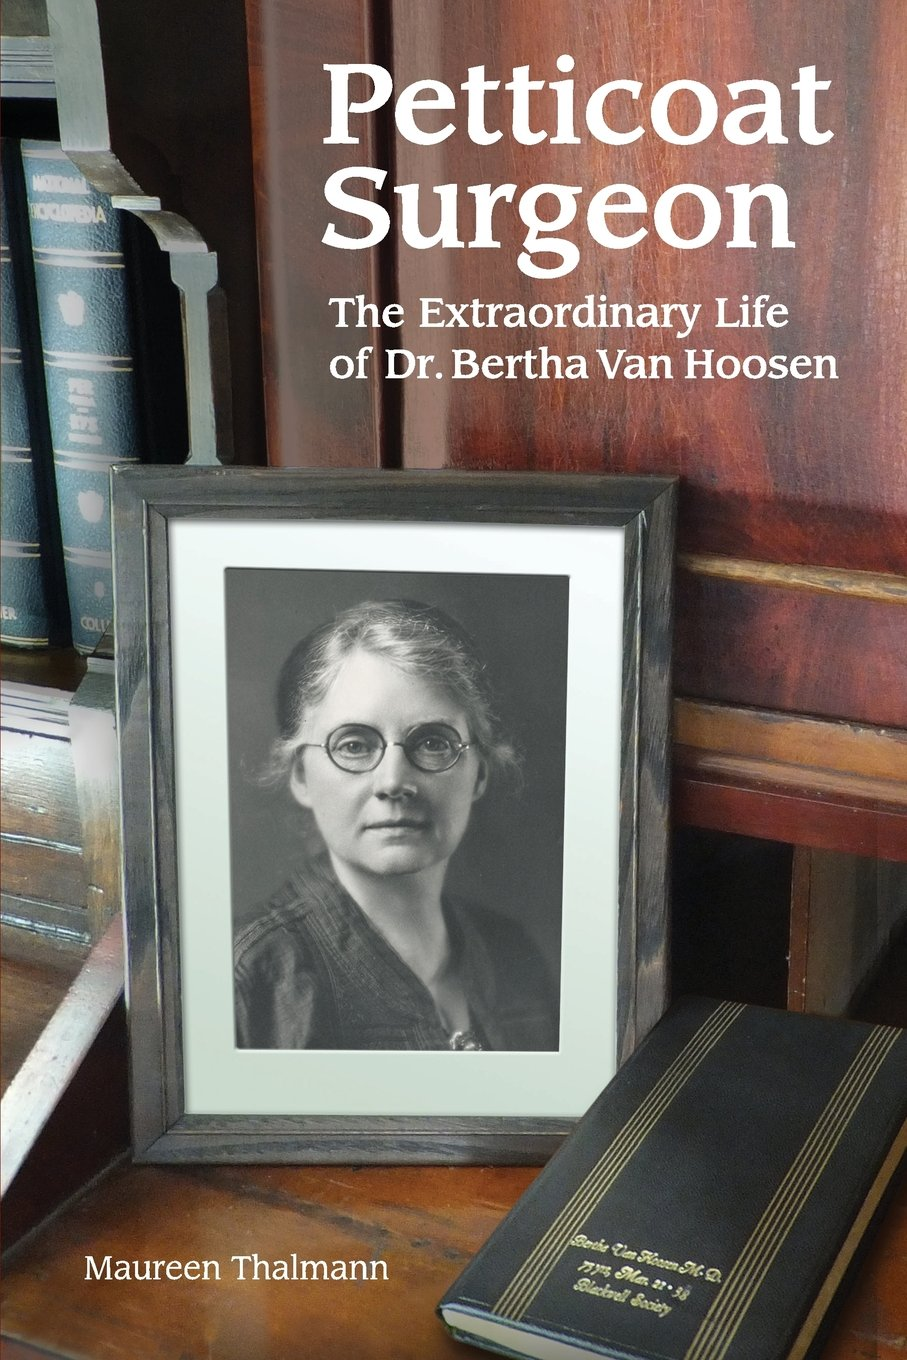 Learn more about the farmhouse's most famous resident with Petticoat Surgeon: The Extraordinary Life of Dr. Bertha Van Hoosen